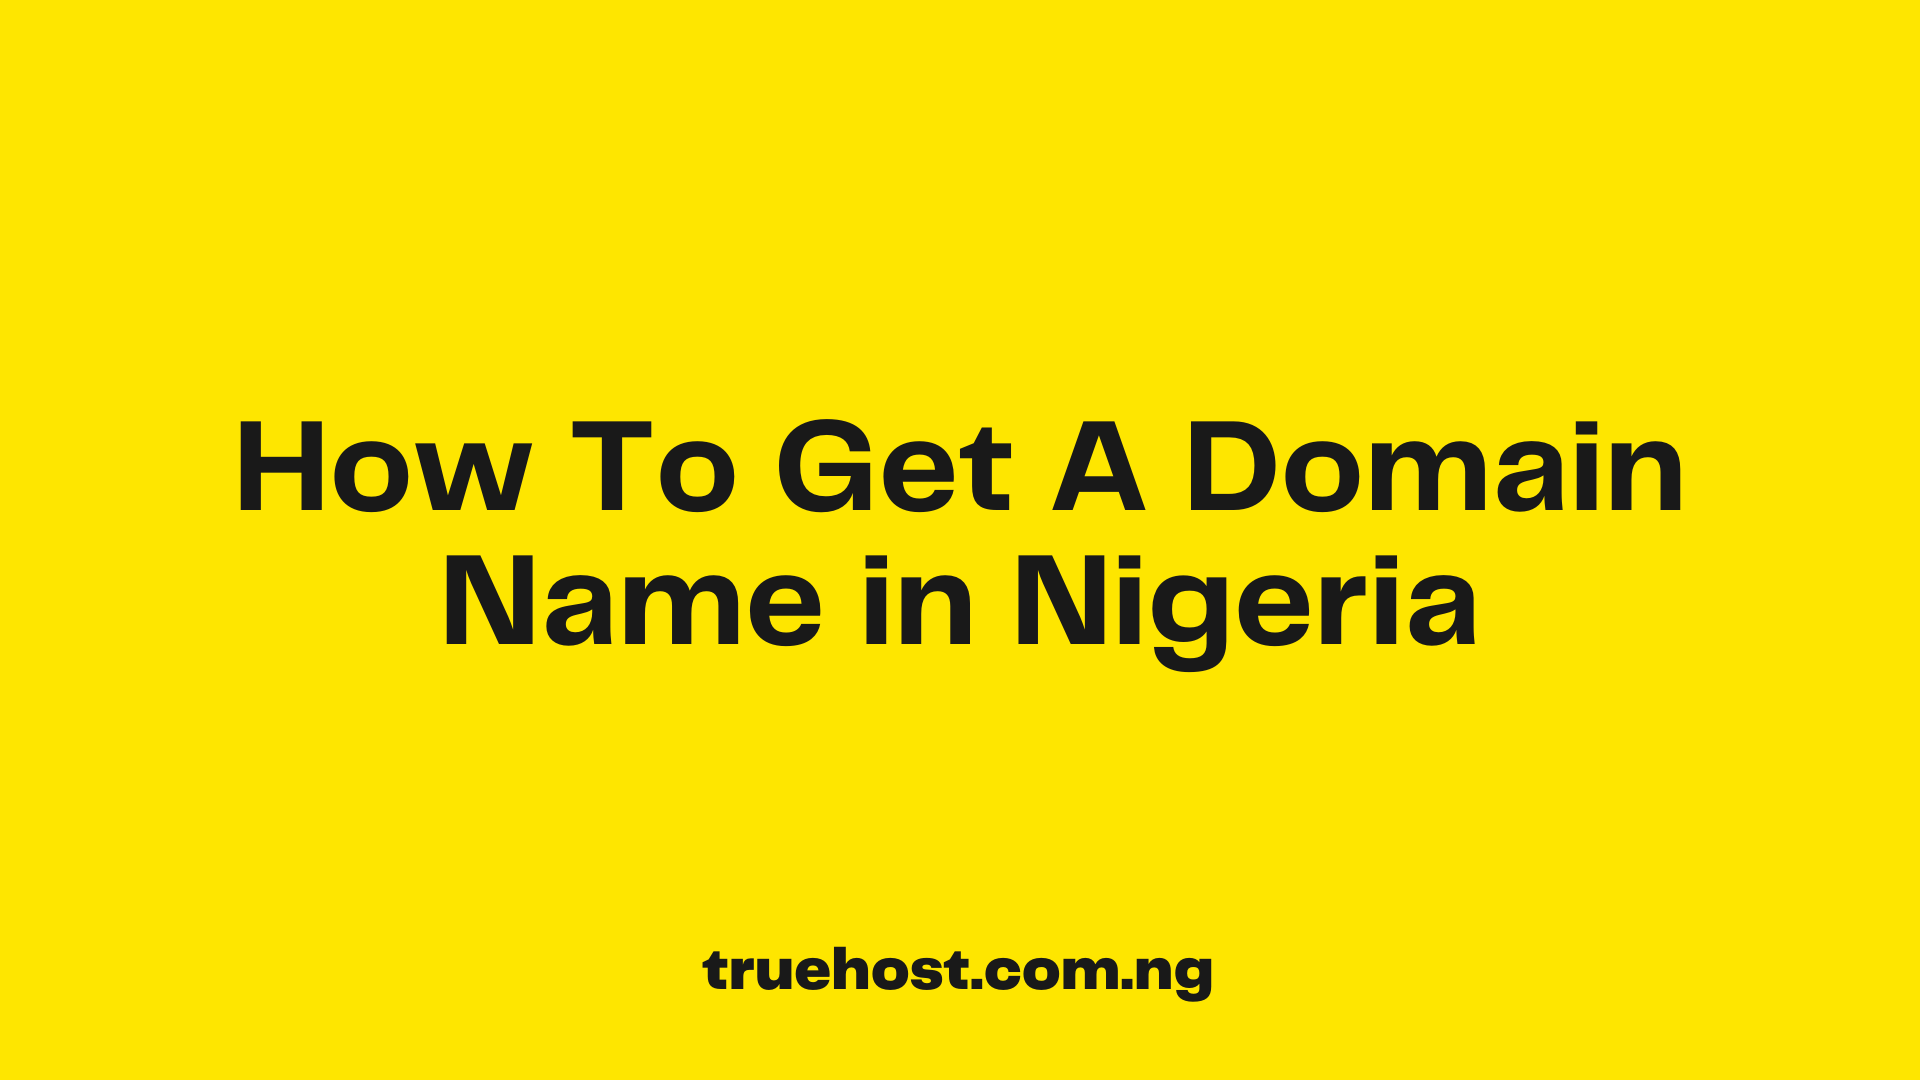 Domain Name in Nigeria